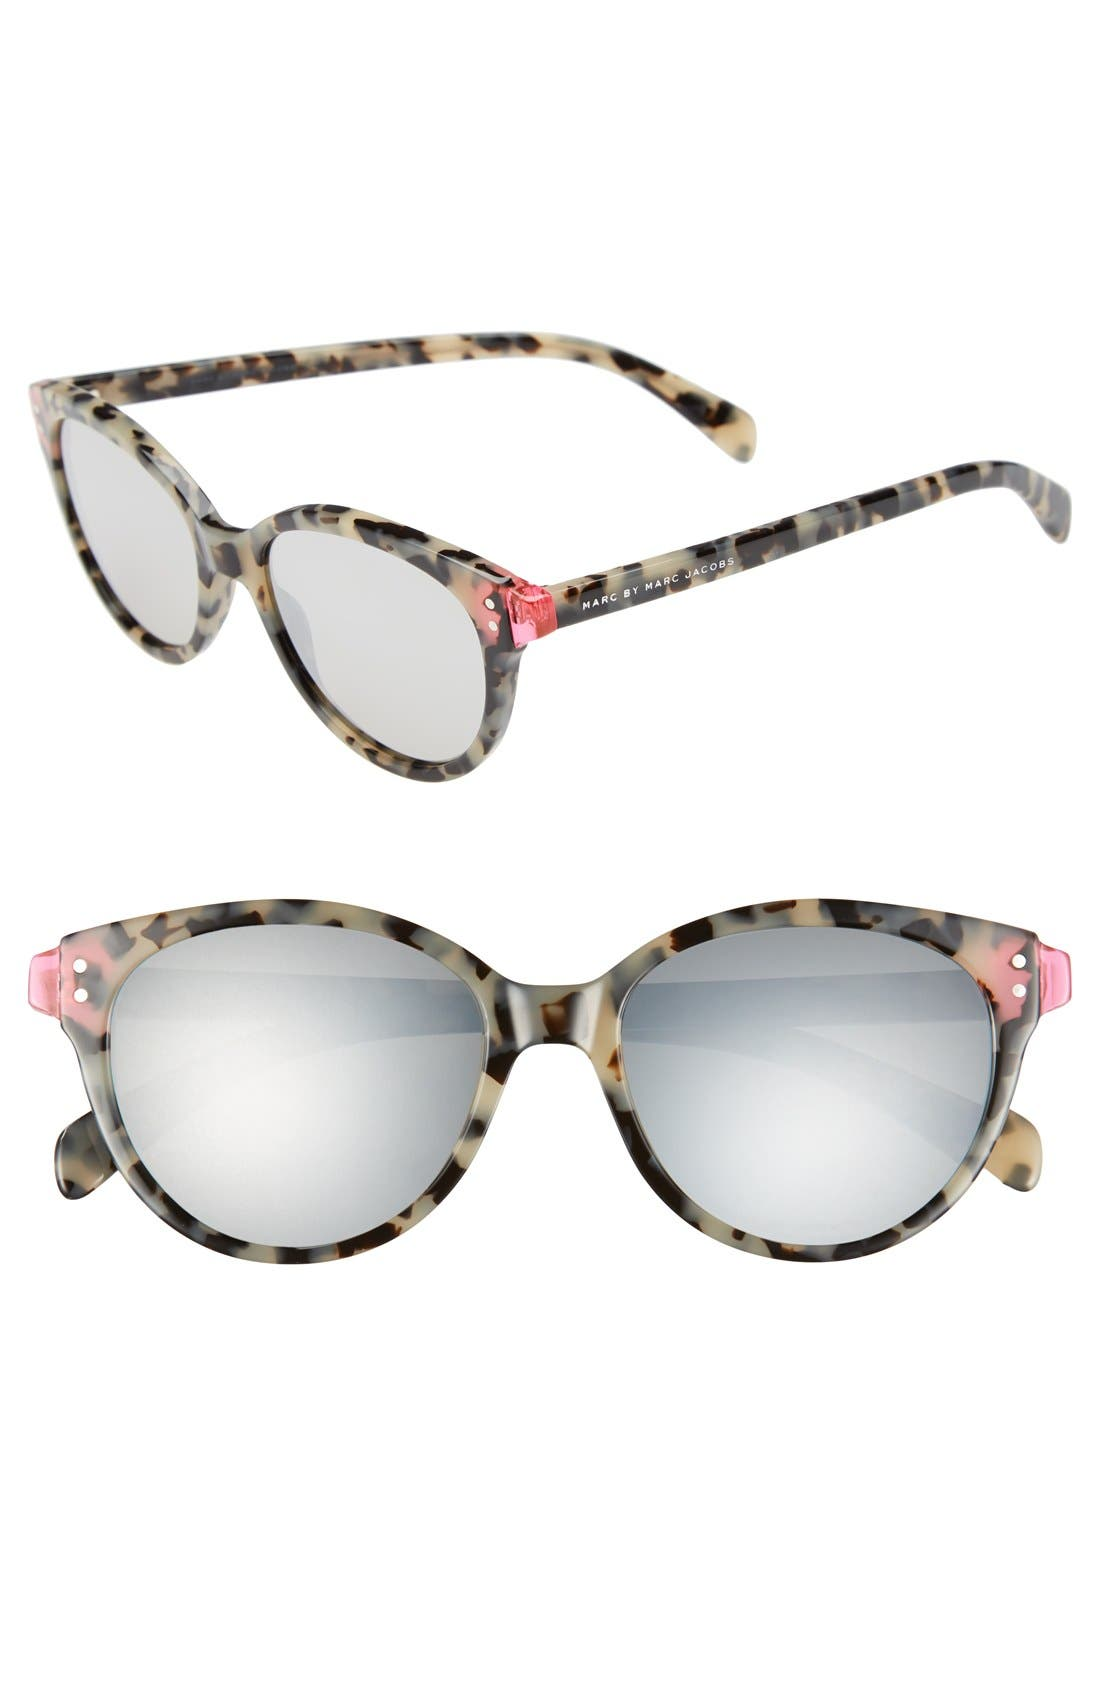 Main Image - MARC JACOBS 'Preppy' 51mm Retro Sunglasses